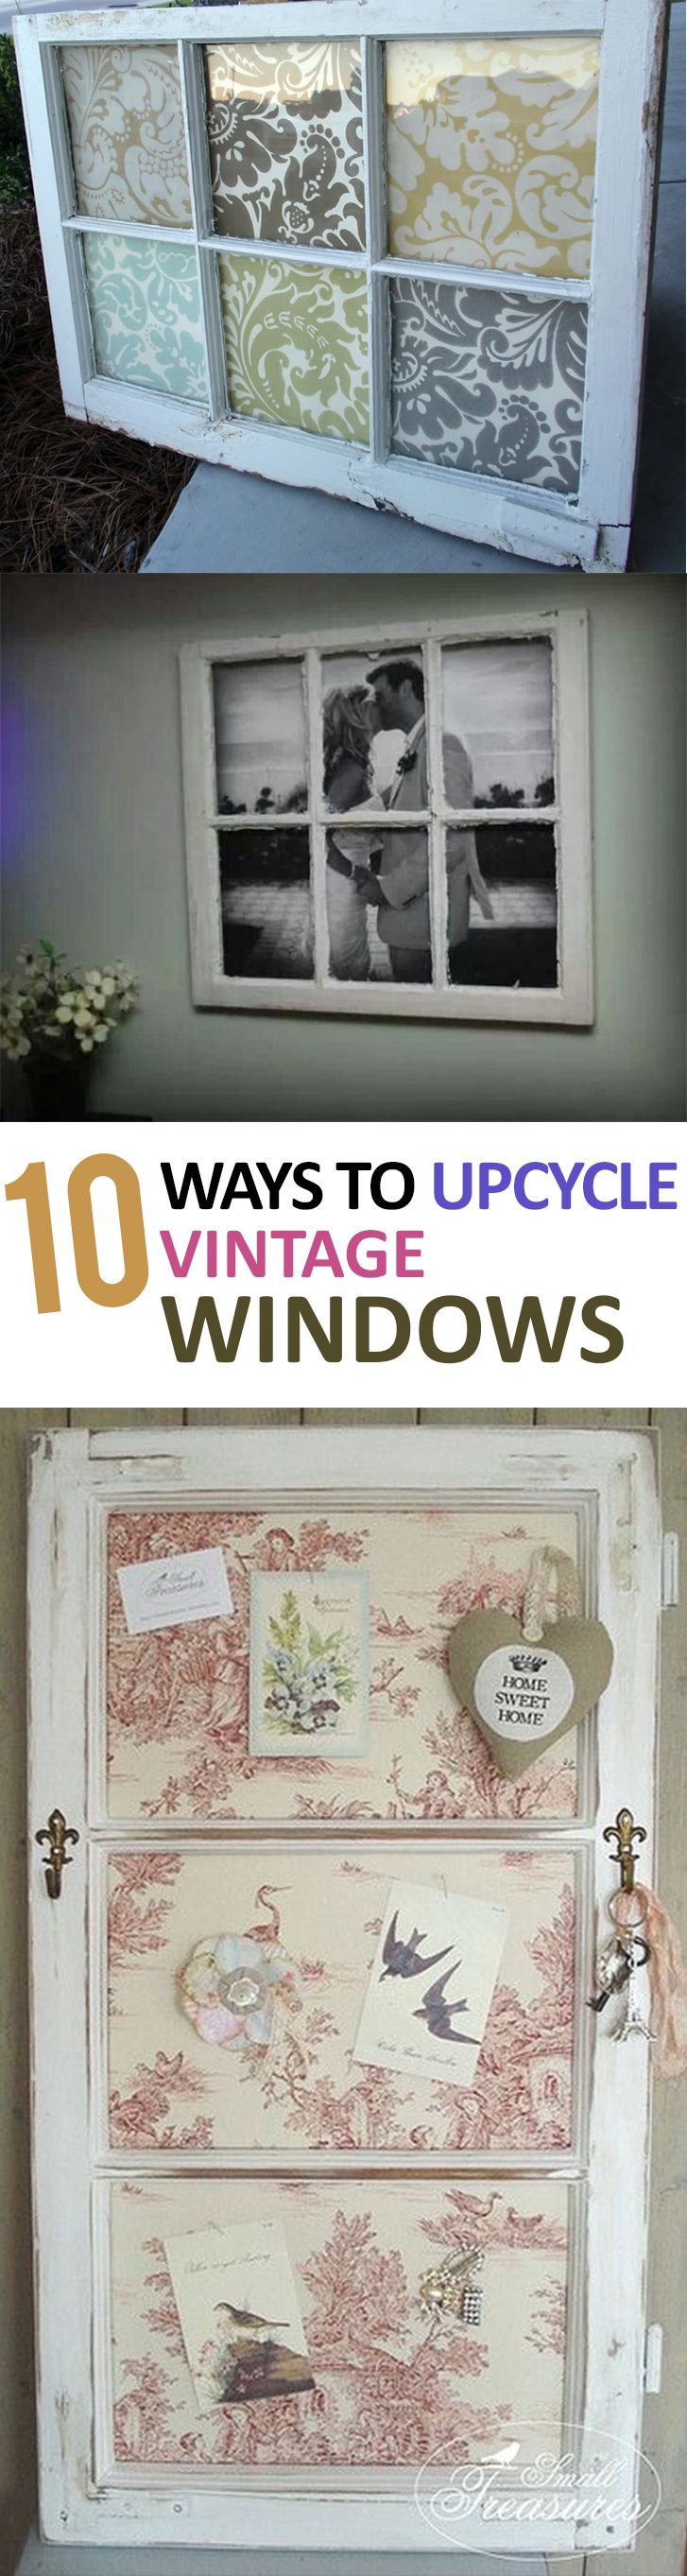 How to decorate with vintage windows.                                                                                                                                                                                 More